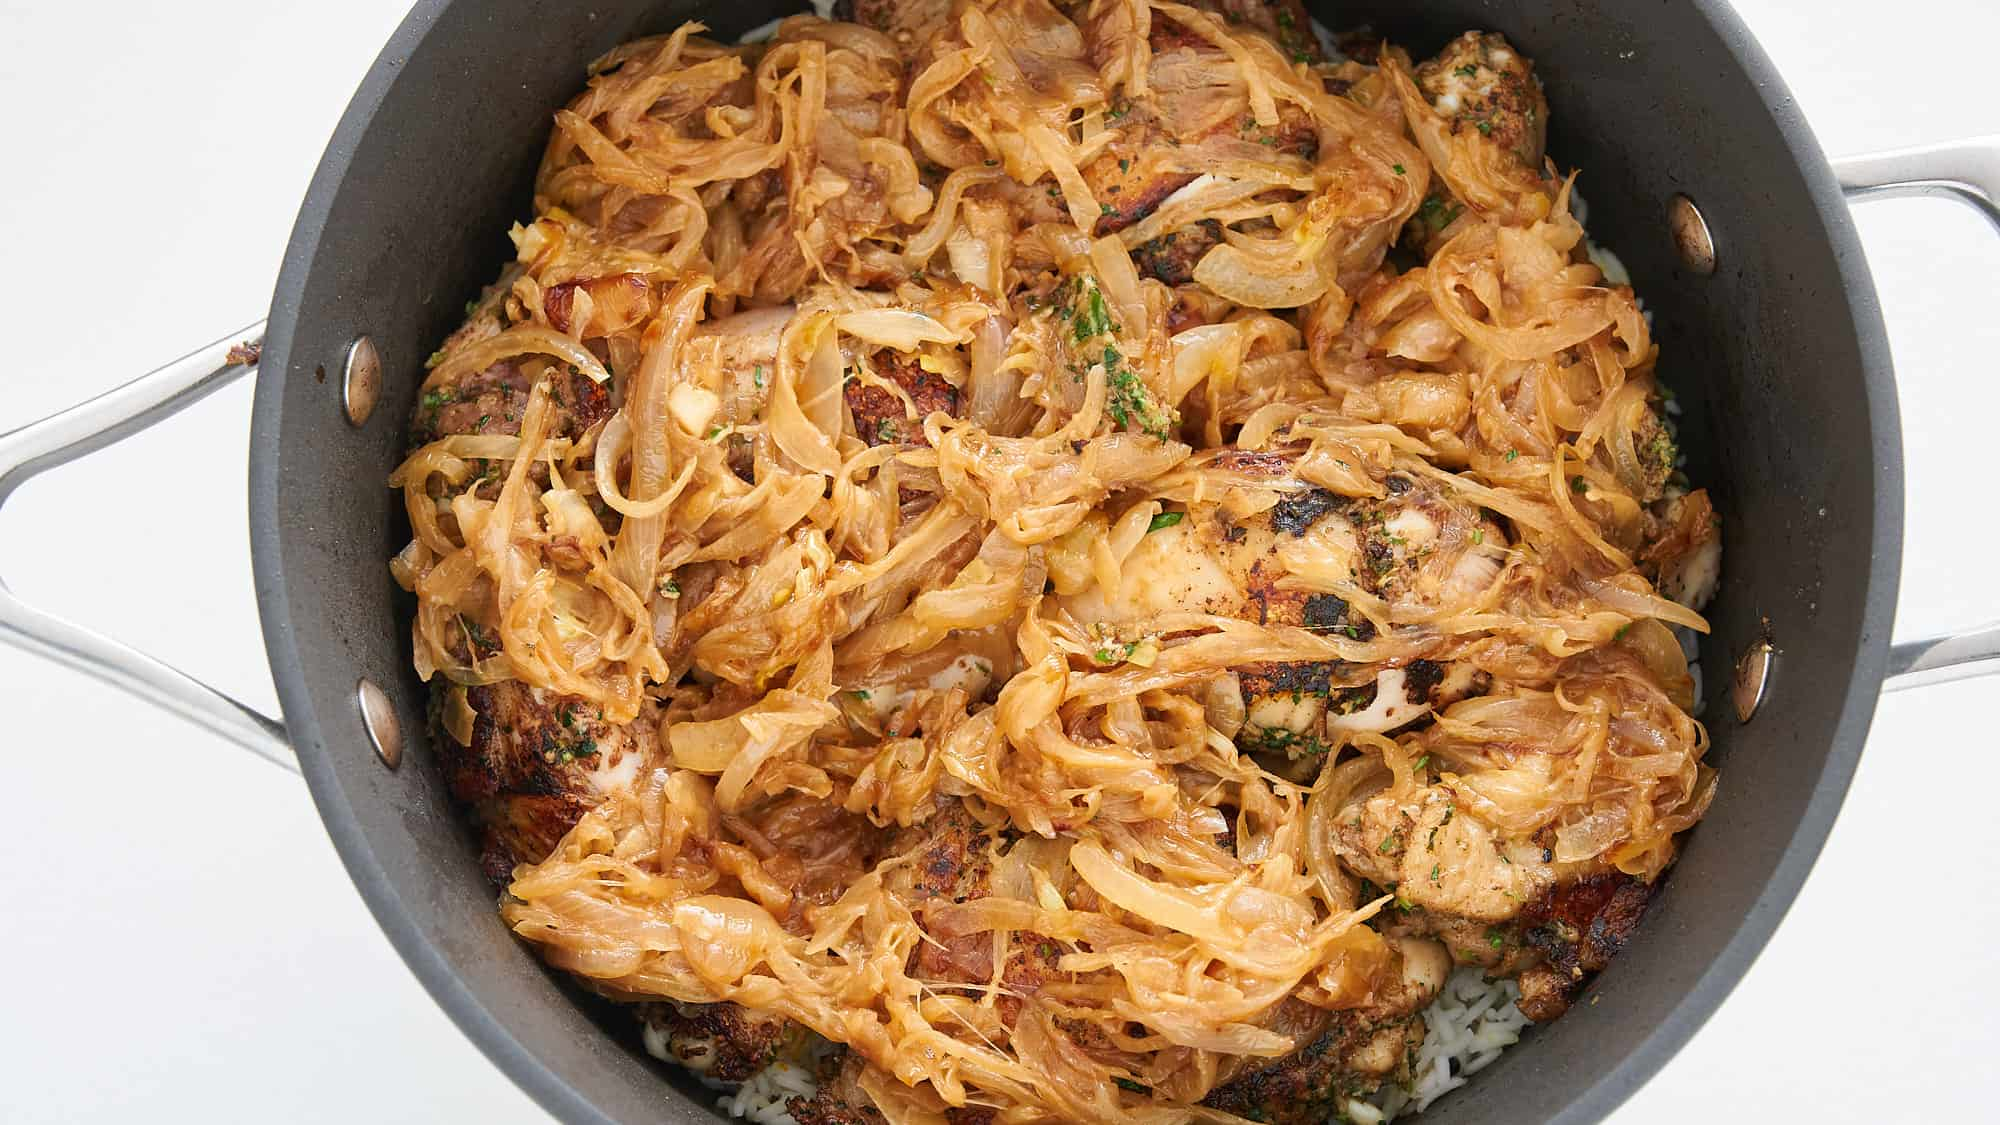 A layer of caramelized onions goes on top of the chicken for the Biryani.